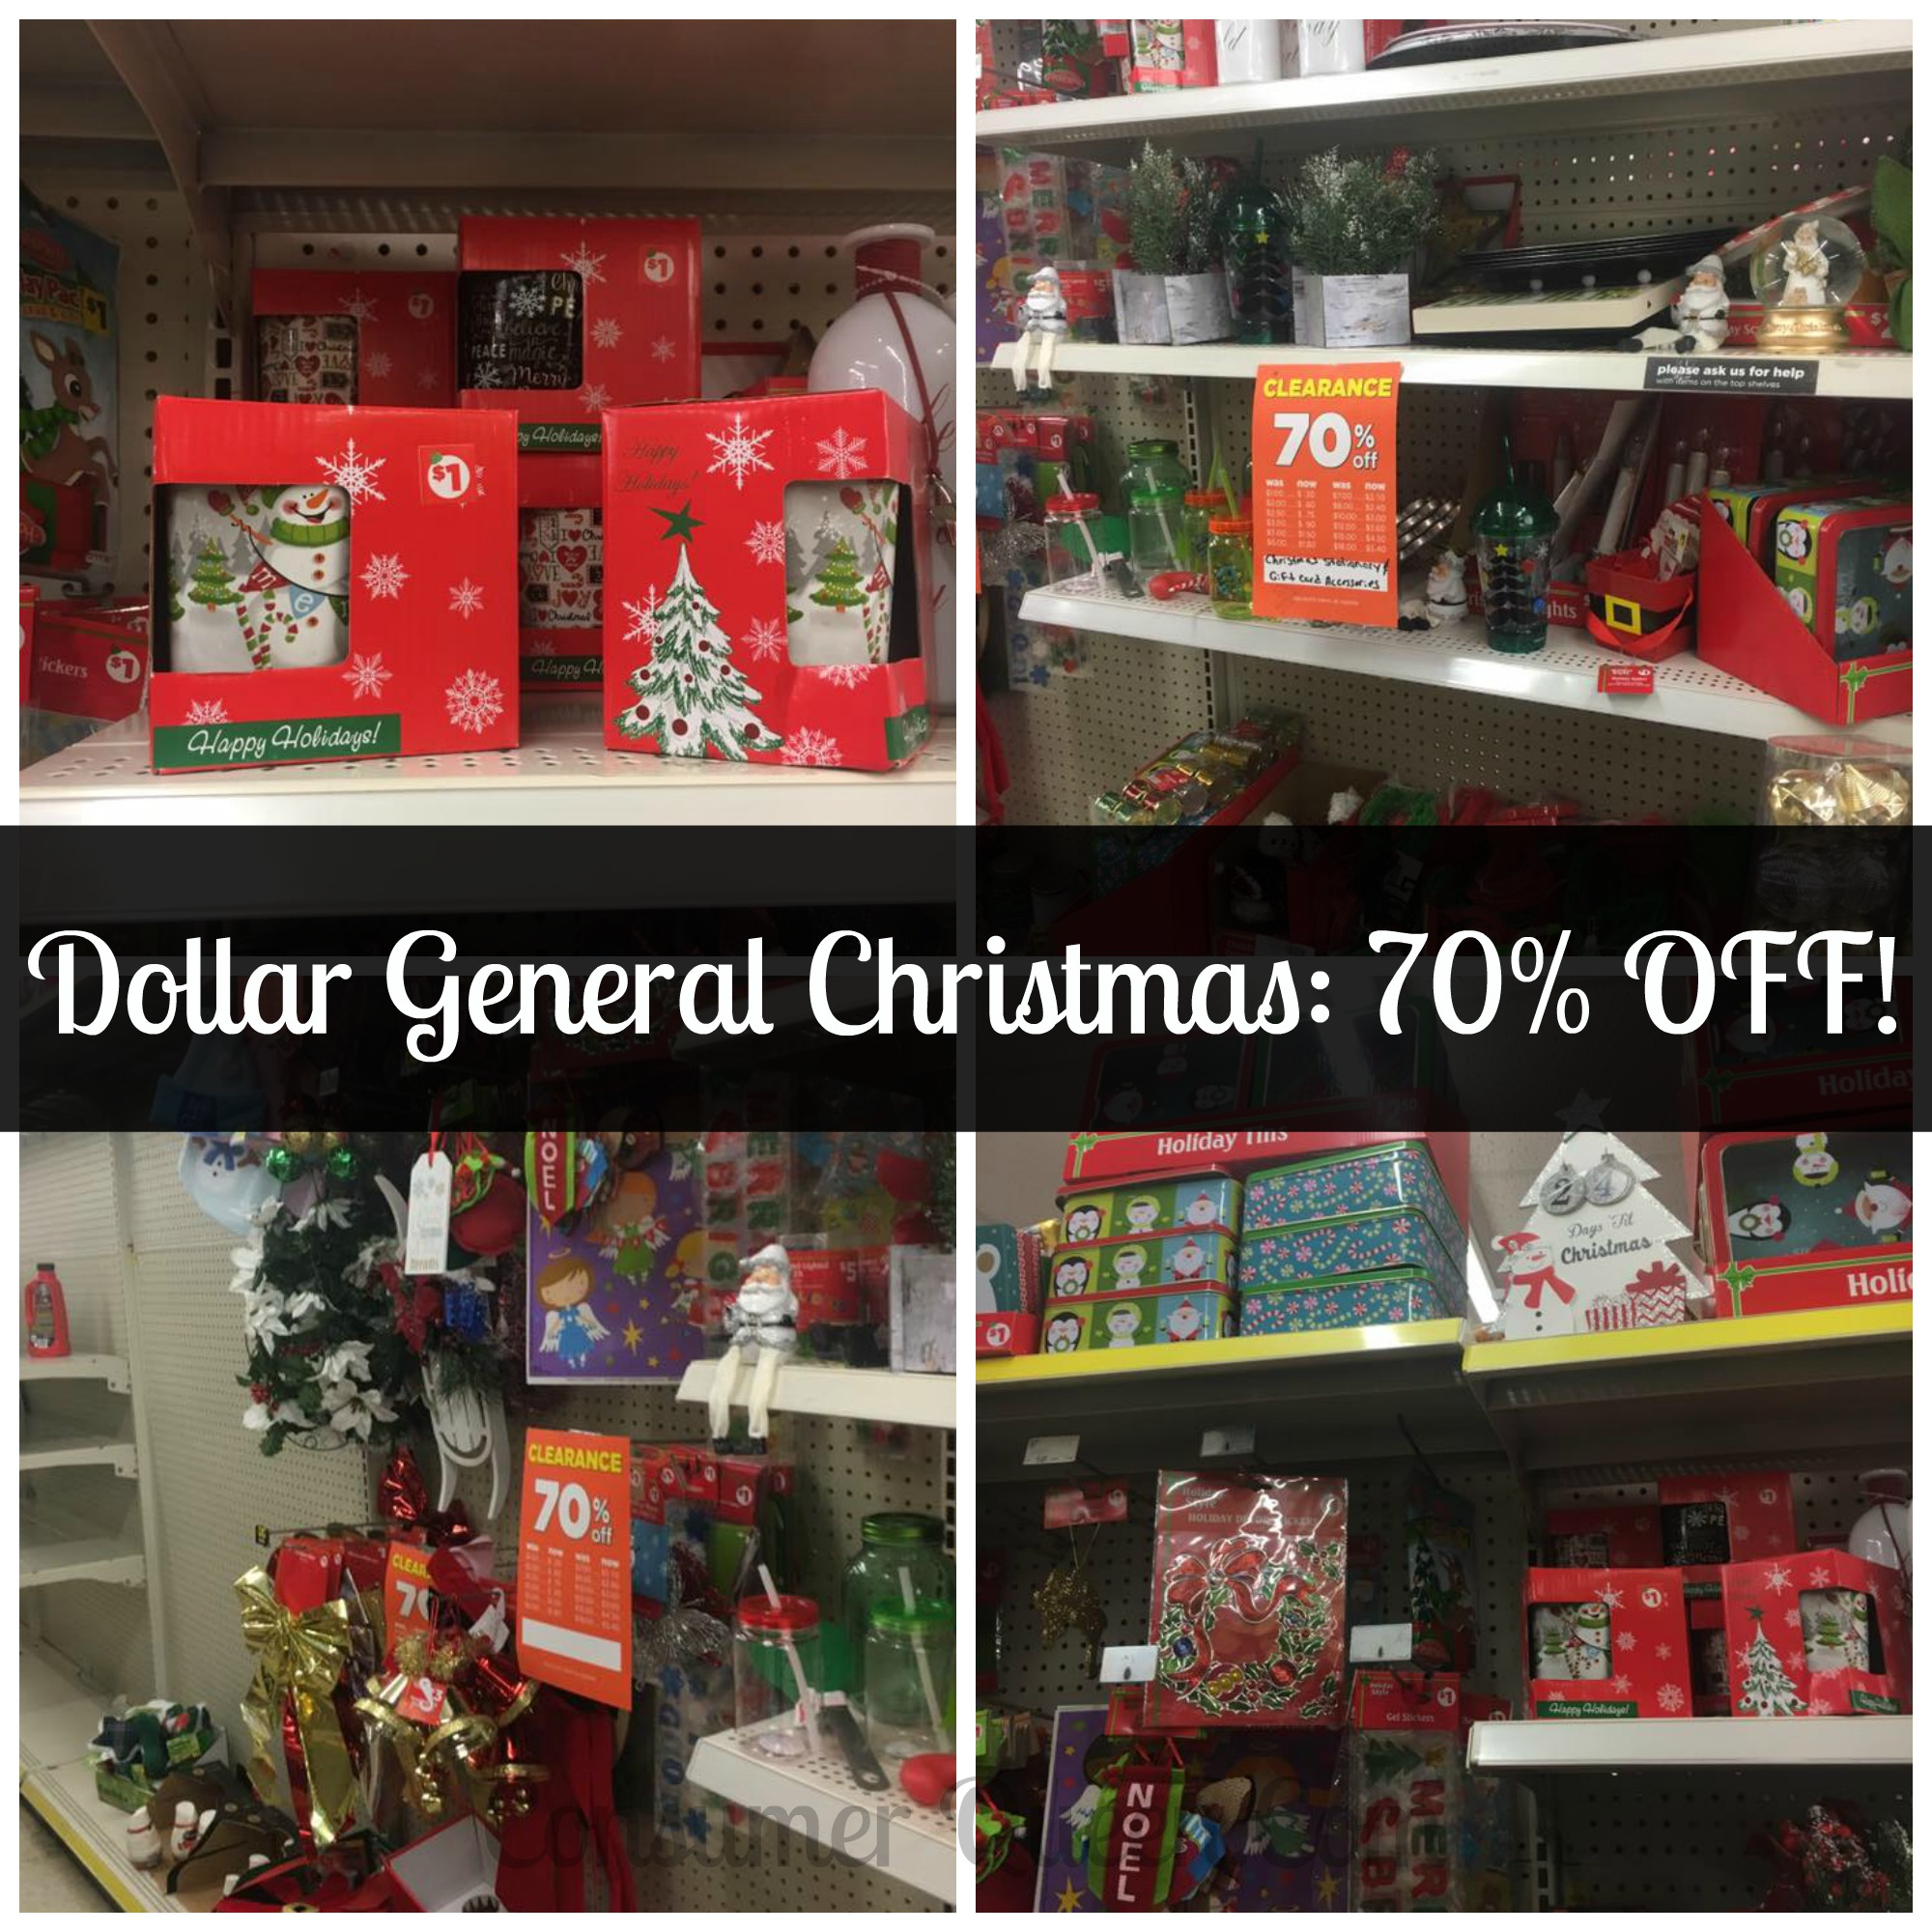 Dollar General Christmas Clearance 1/13